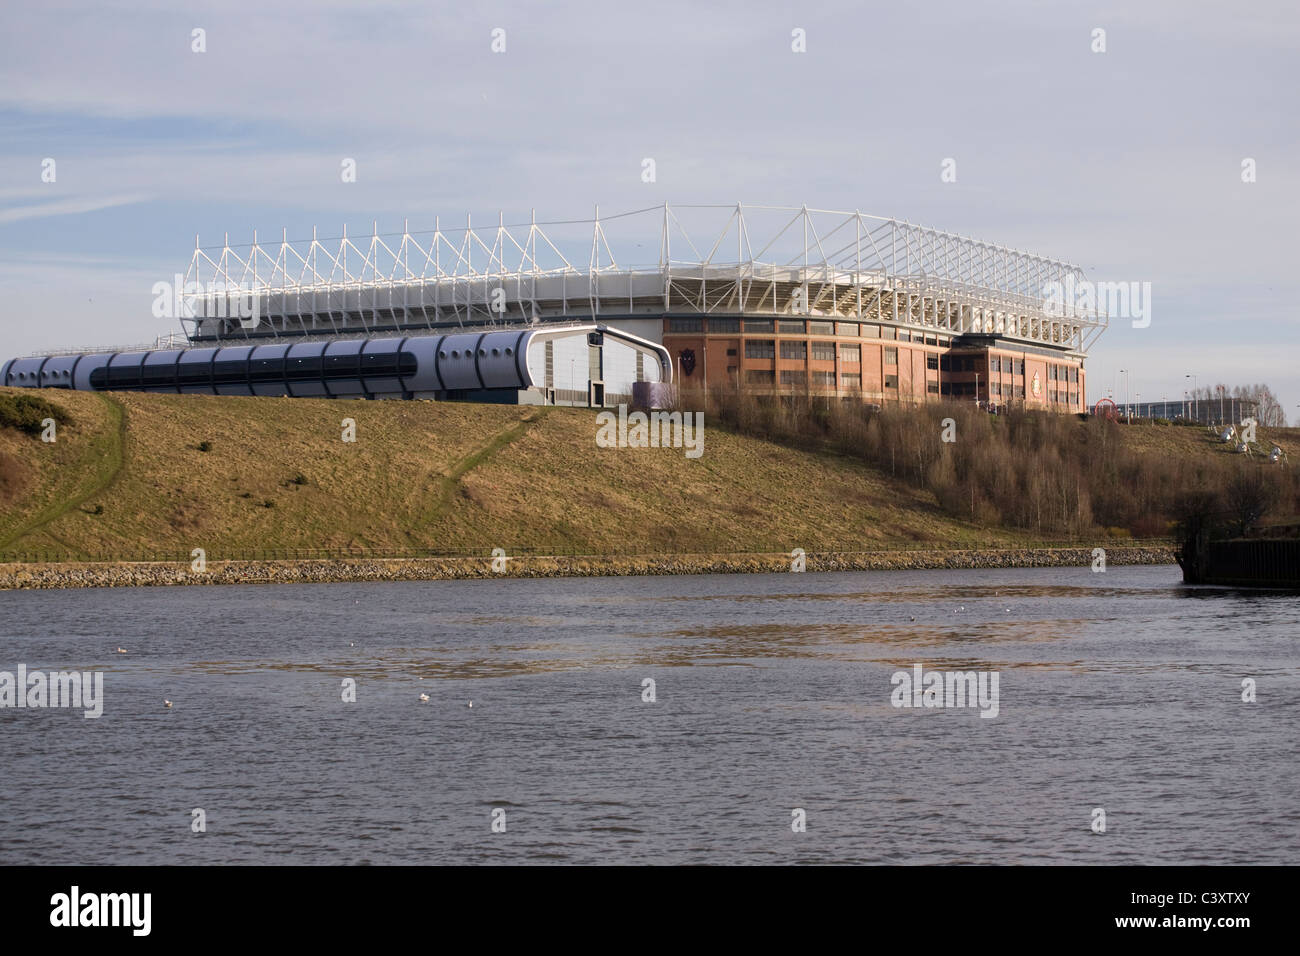 The Sunderland Aquatic Centre and the Stadium of Light, home of Sunderland AFC on the banks of the River Wear - Stock Image